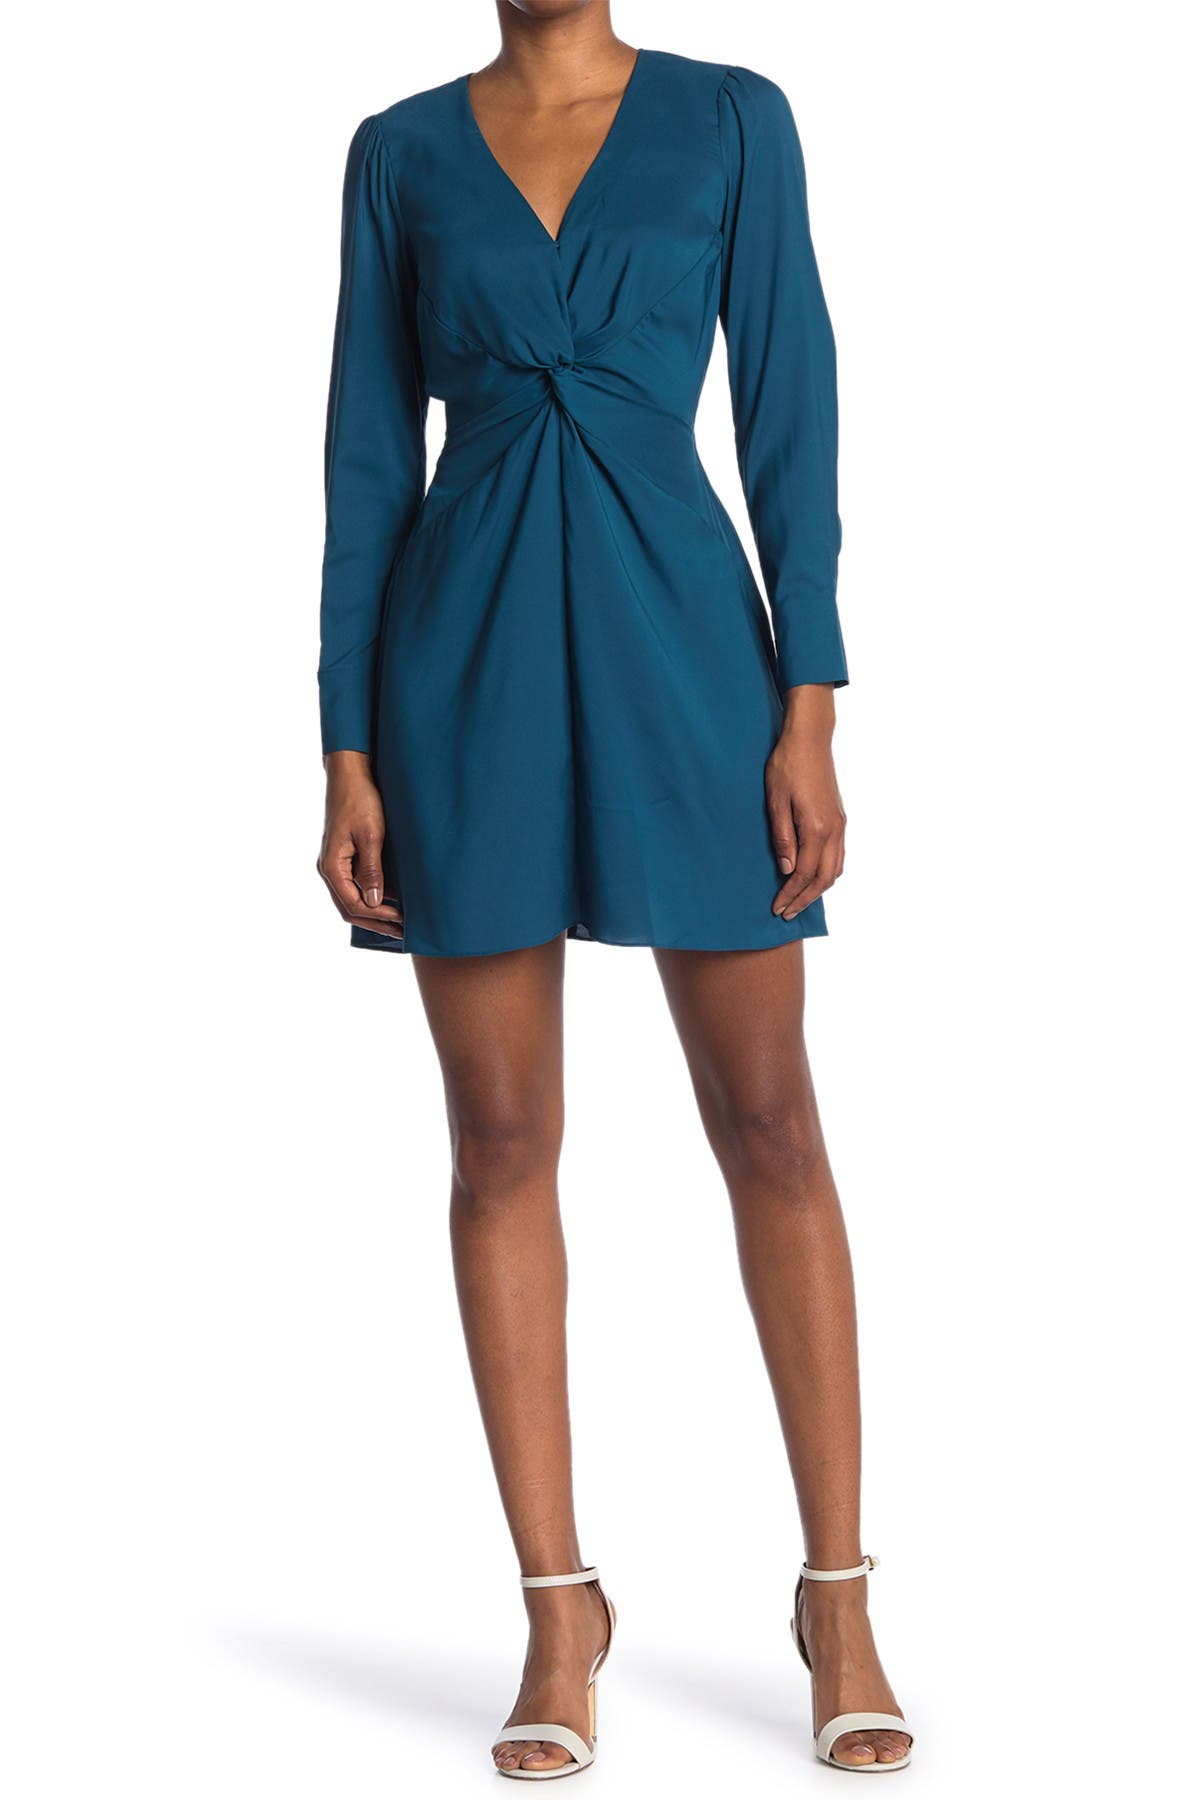 Image of Parker Long Sleeve Knot Front Dress